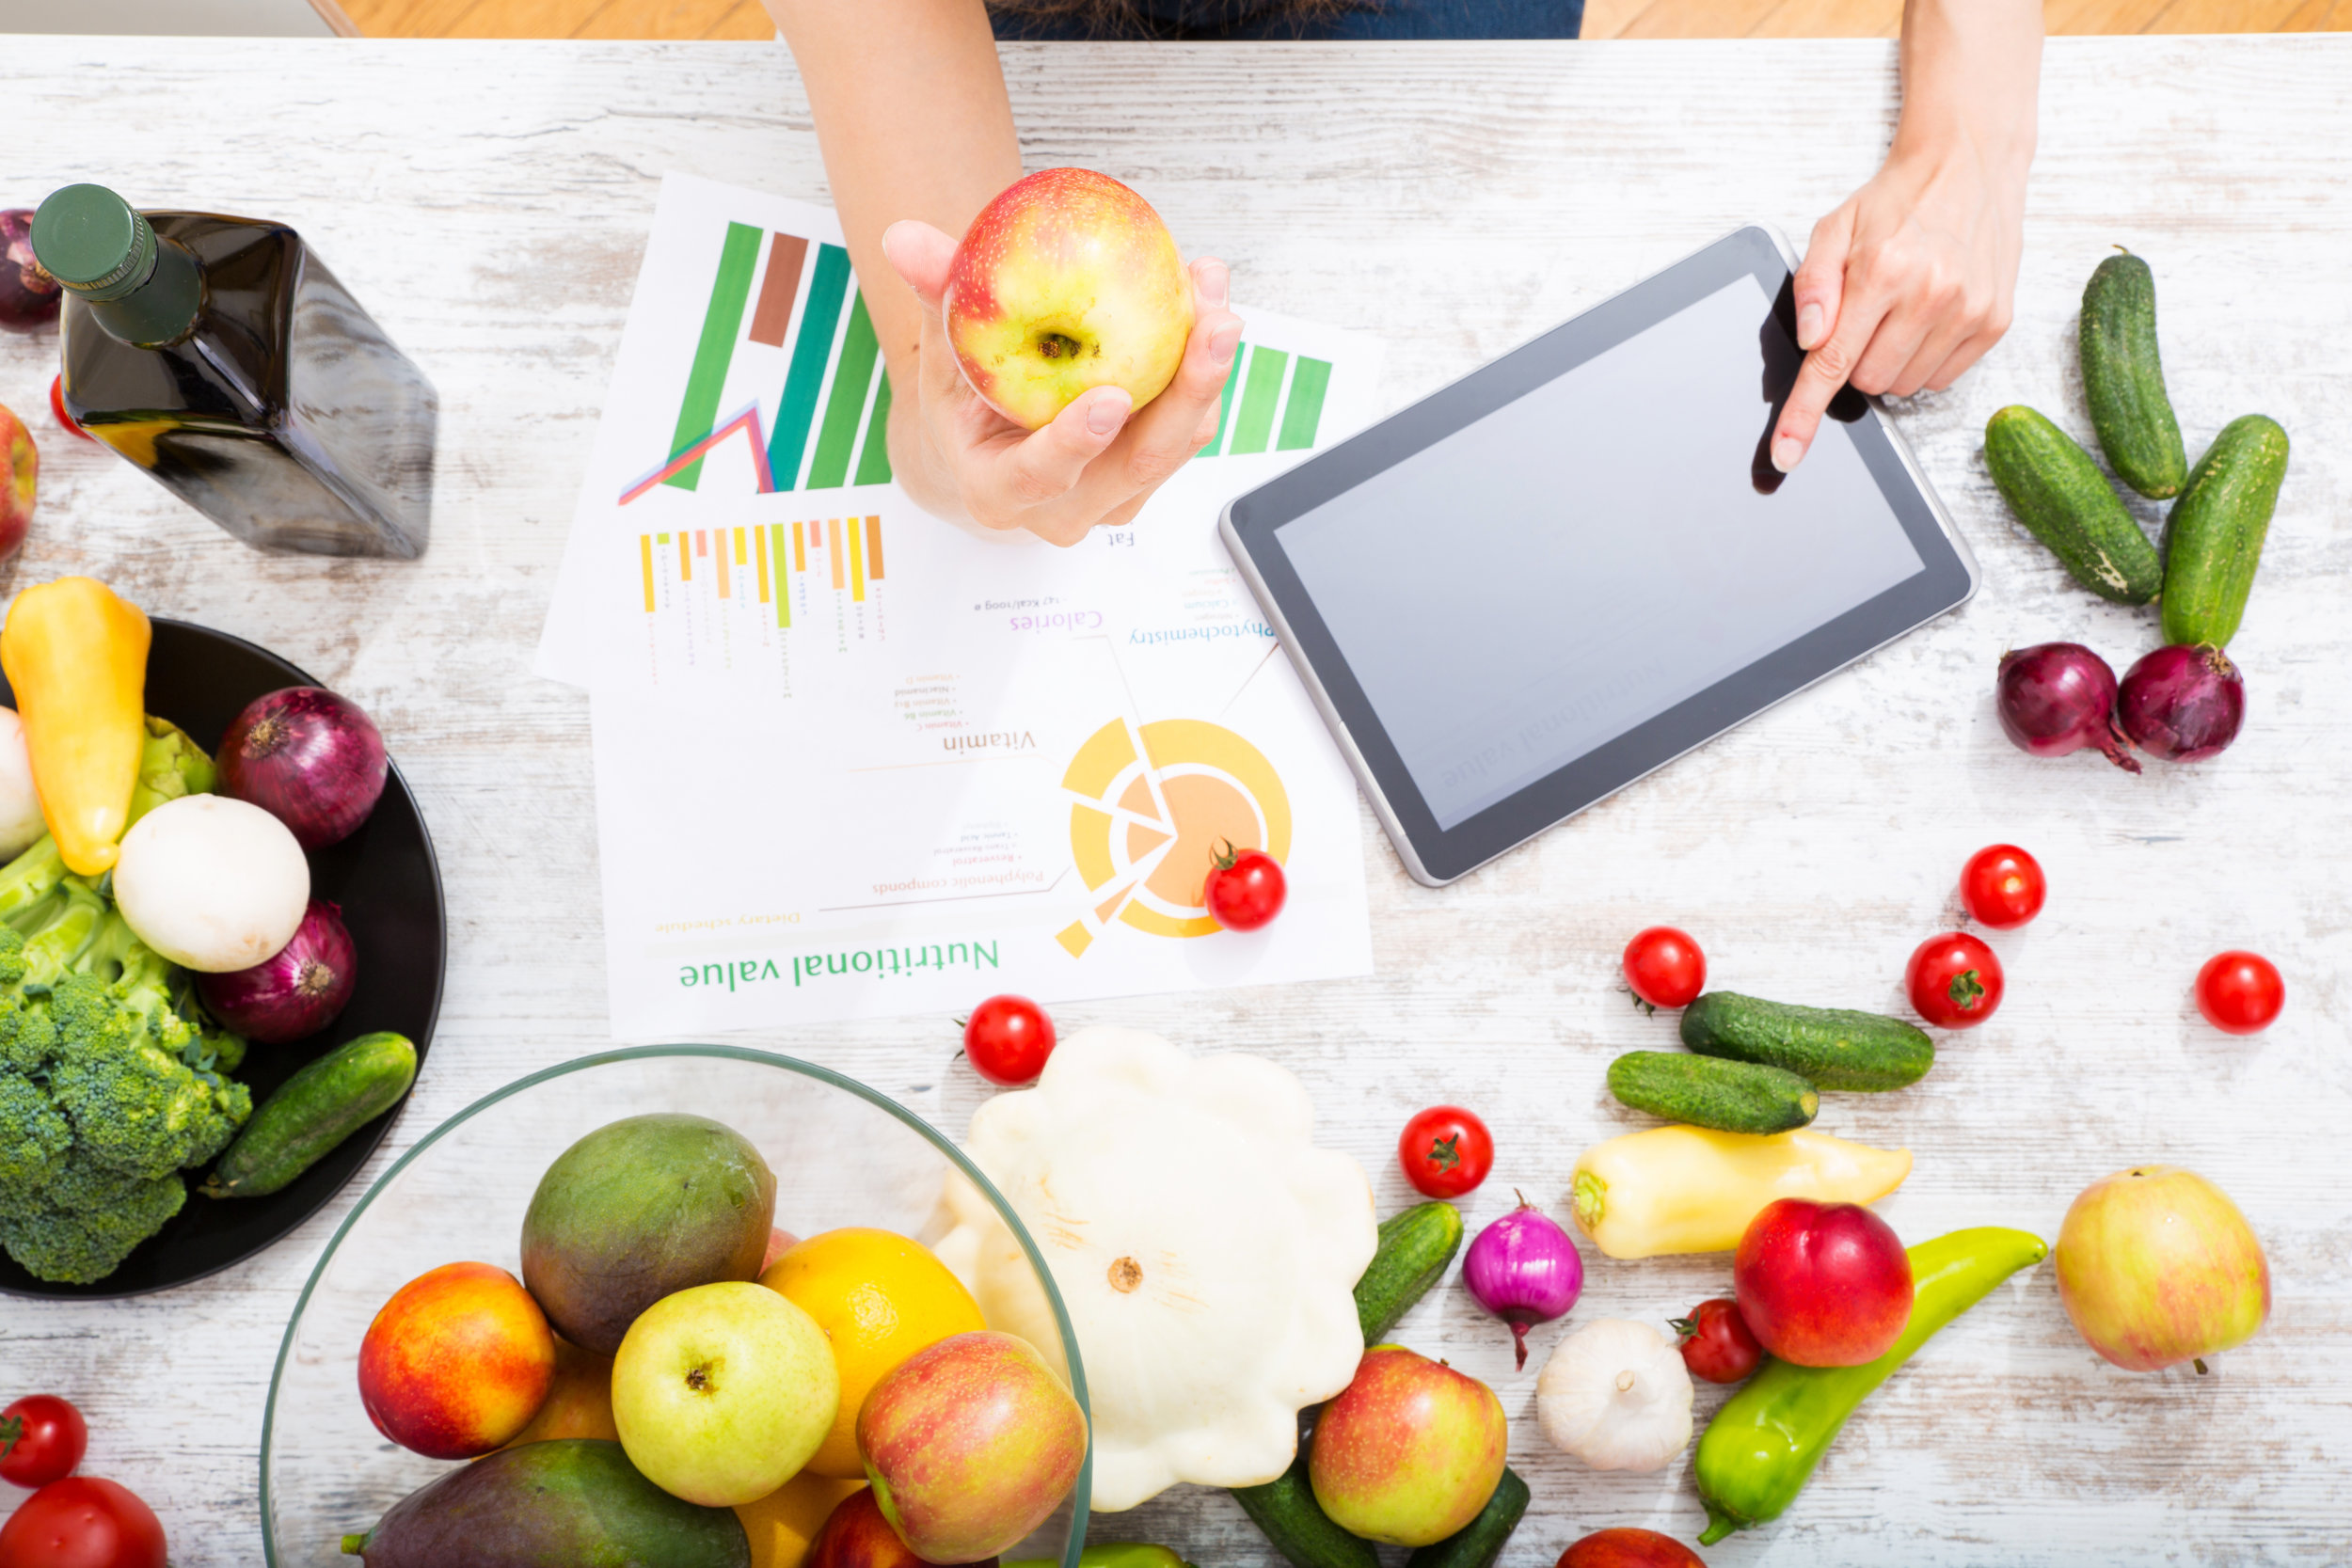 Personalized nutrition consultations and meal plans for your healthy eating goals -